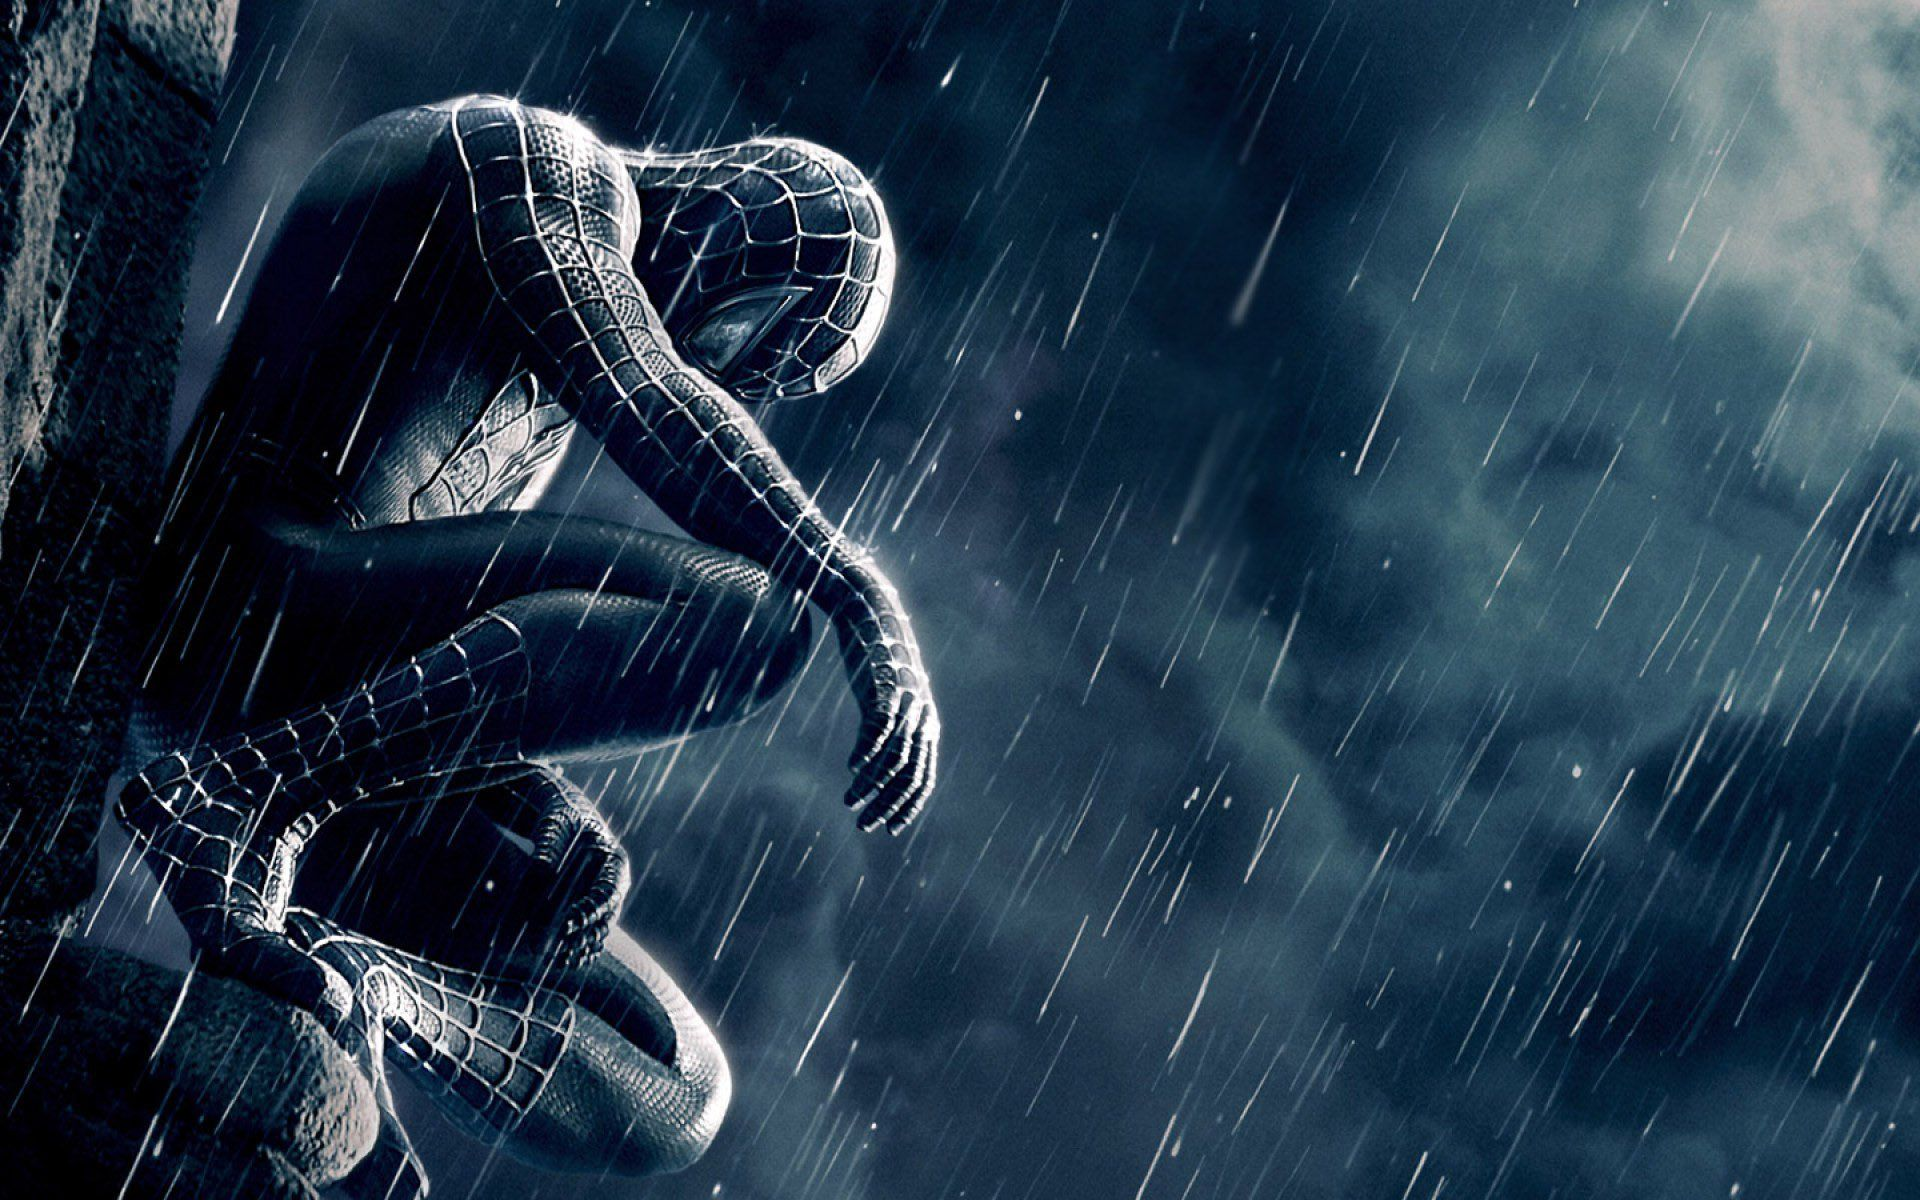 Hd wallpaper spiderman - Spiderman Hd Wallpaper Collection For Free Download